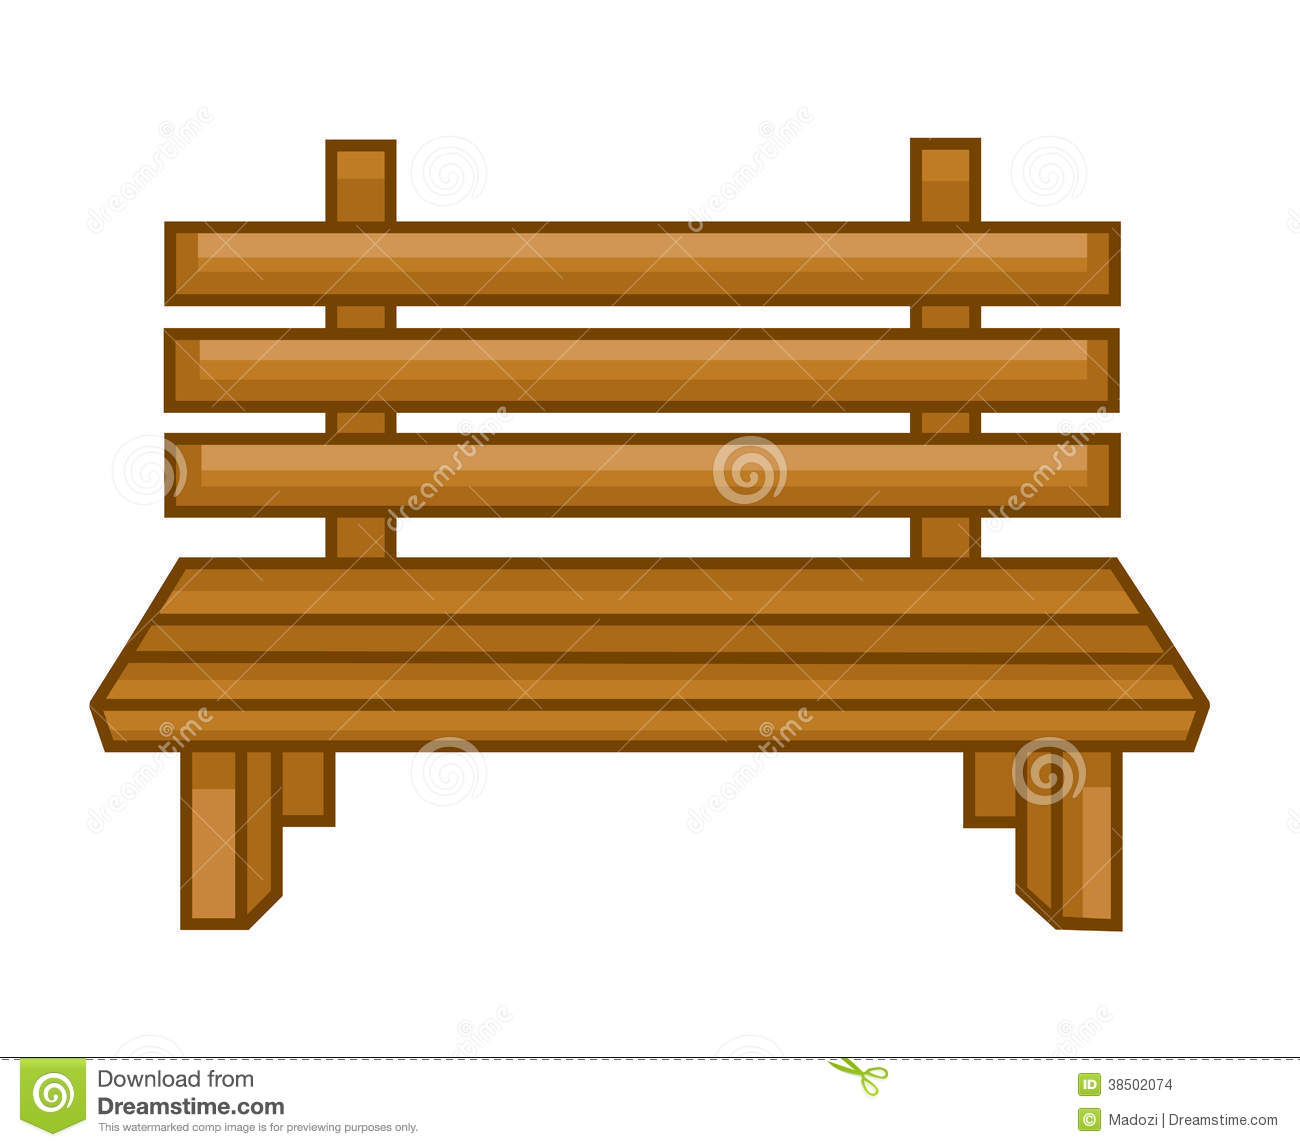 Wooden Bench Isolated Illustration Stock Images - Image: 38502074